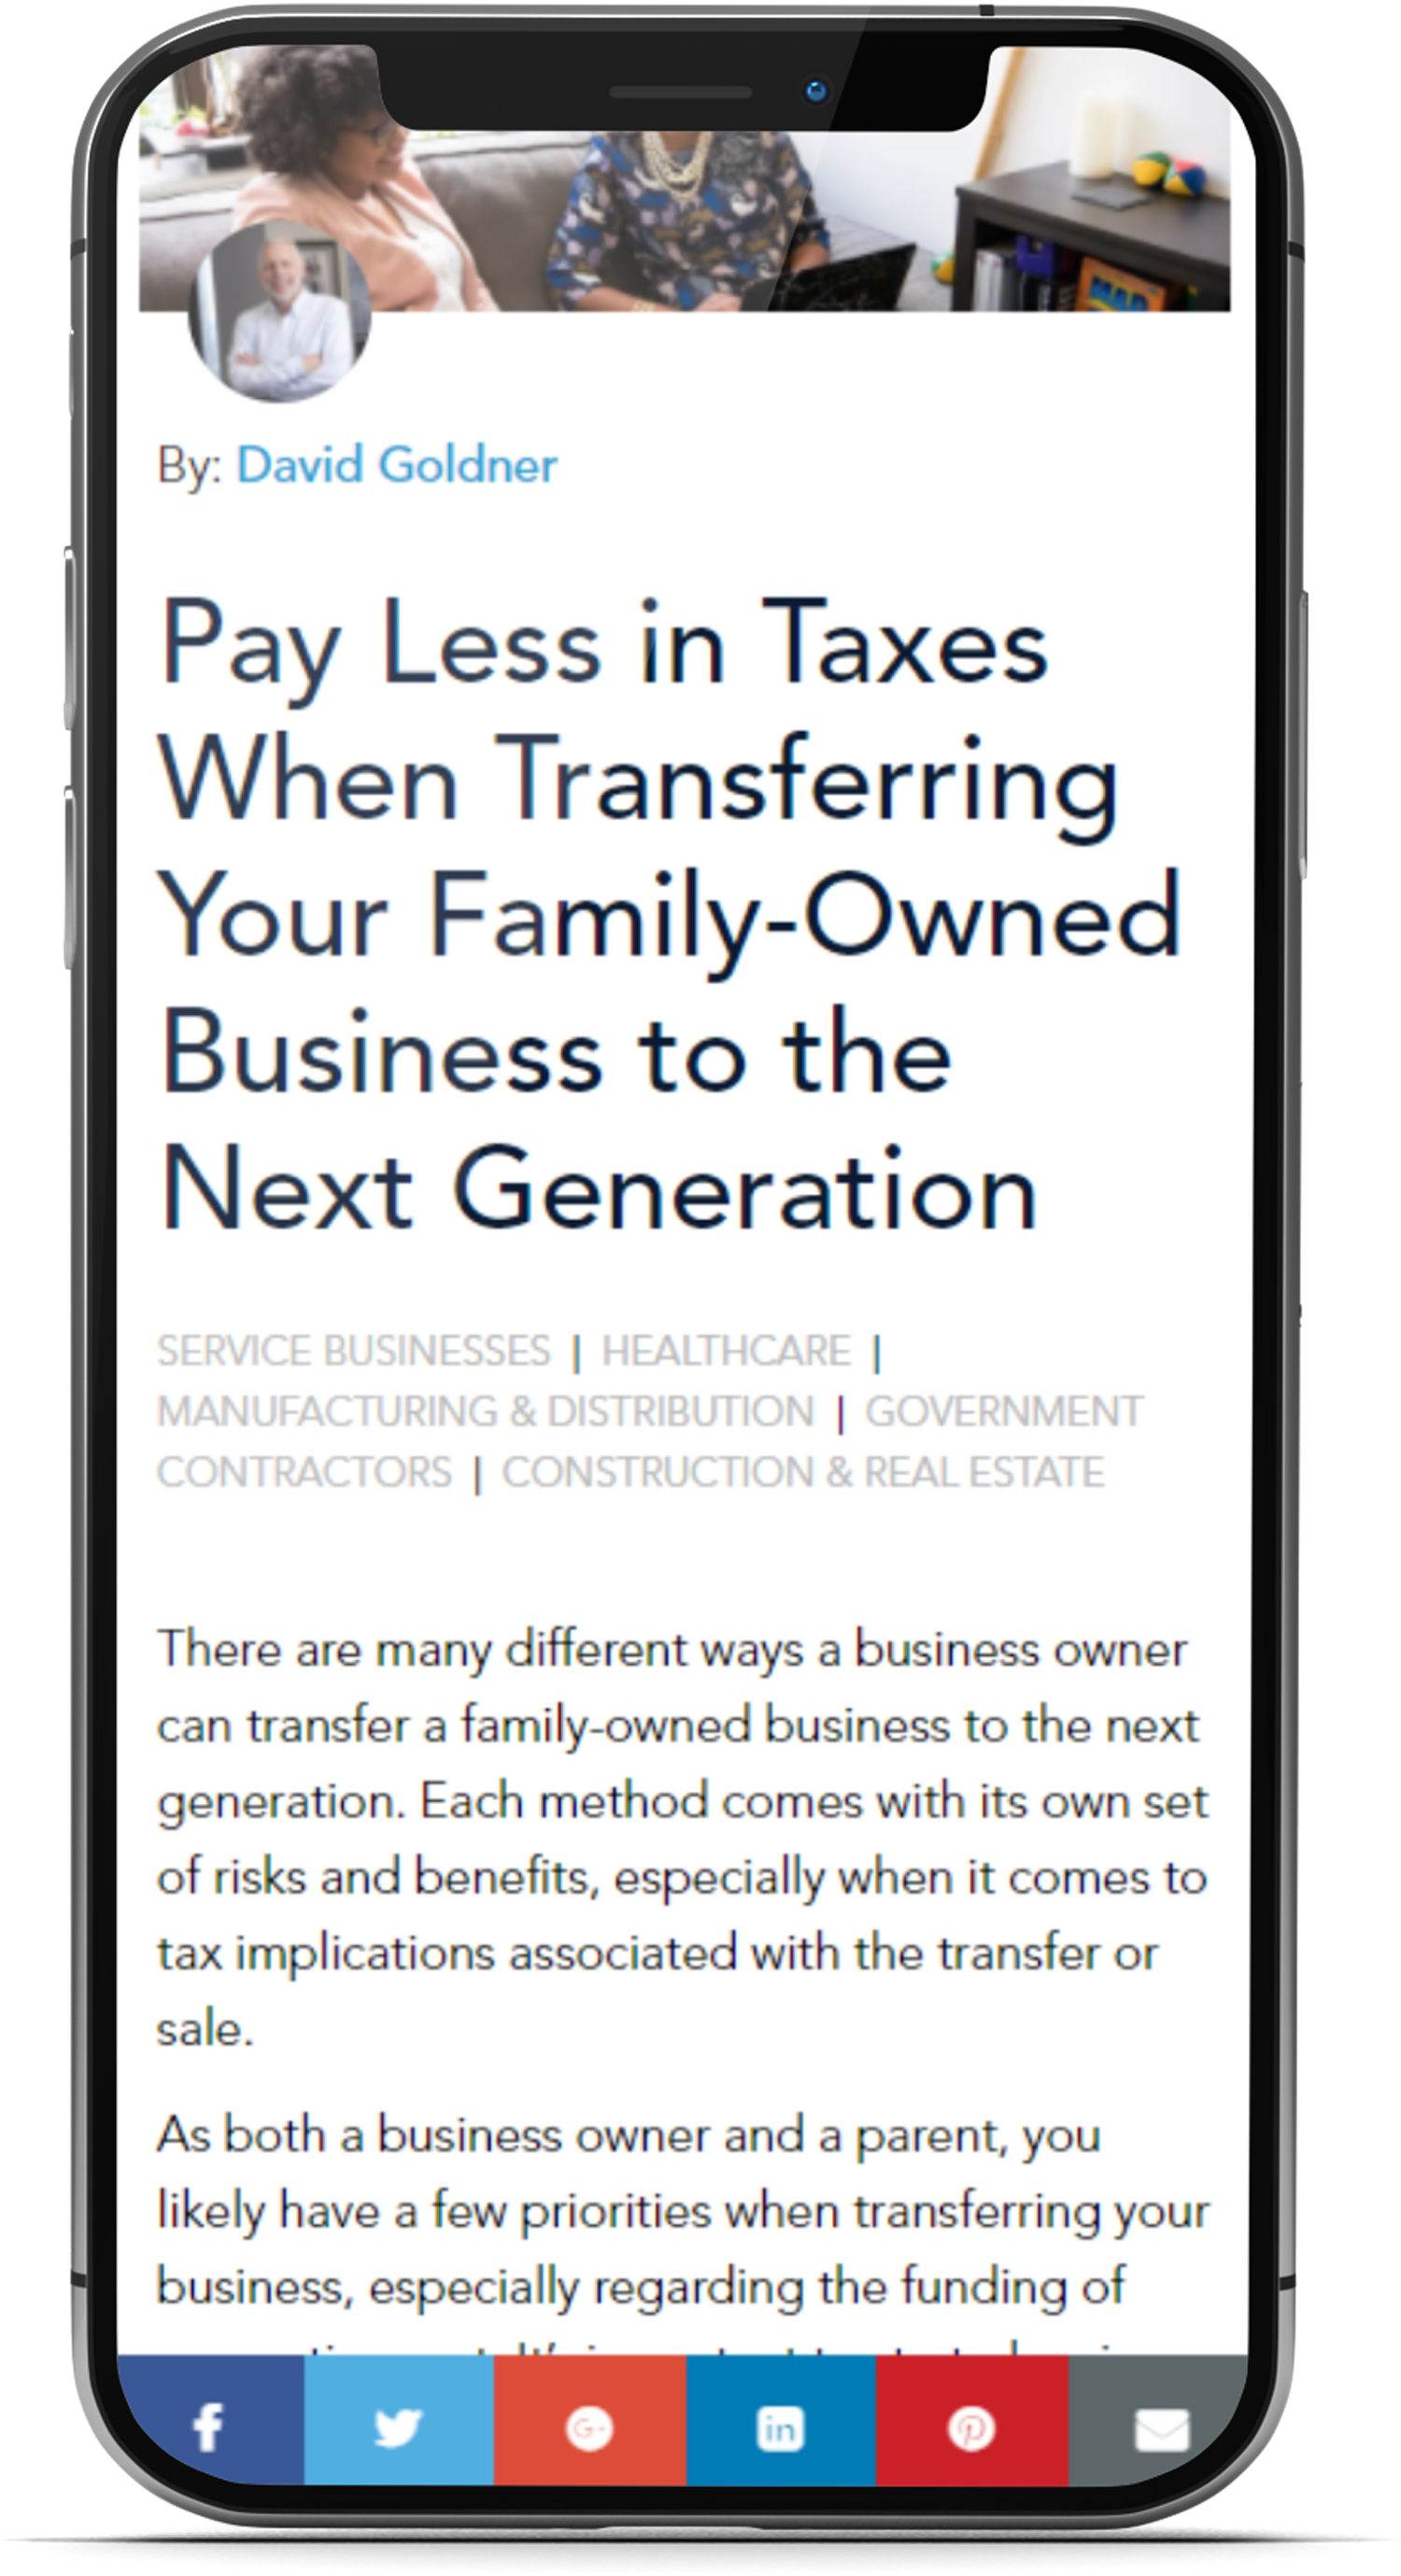 3D Cover - Blog - Pay Less in Taxes When Transferring Family Owned Business